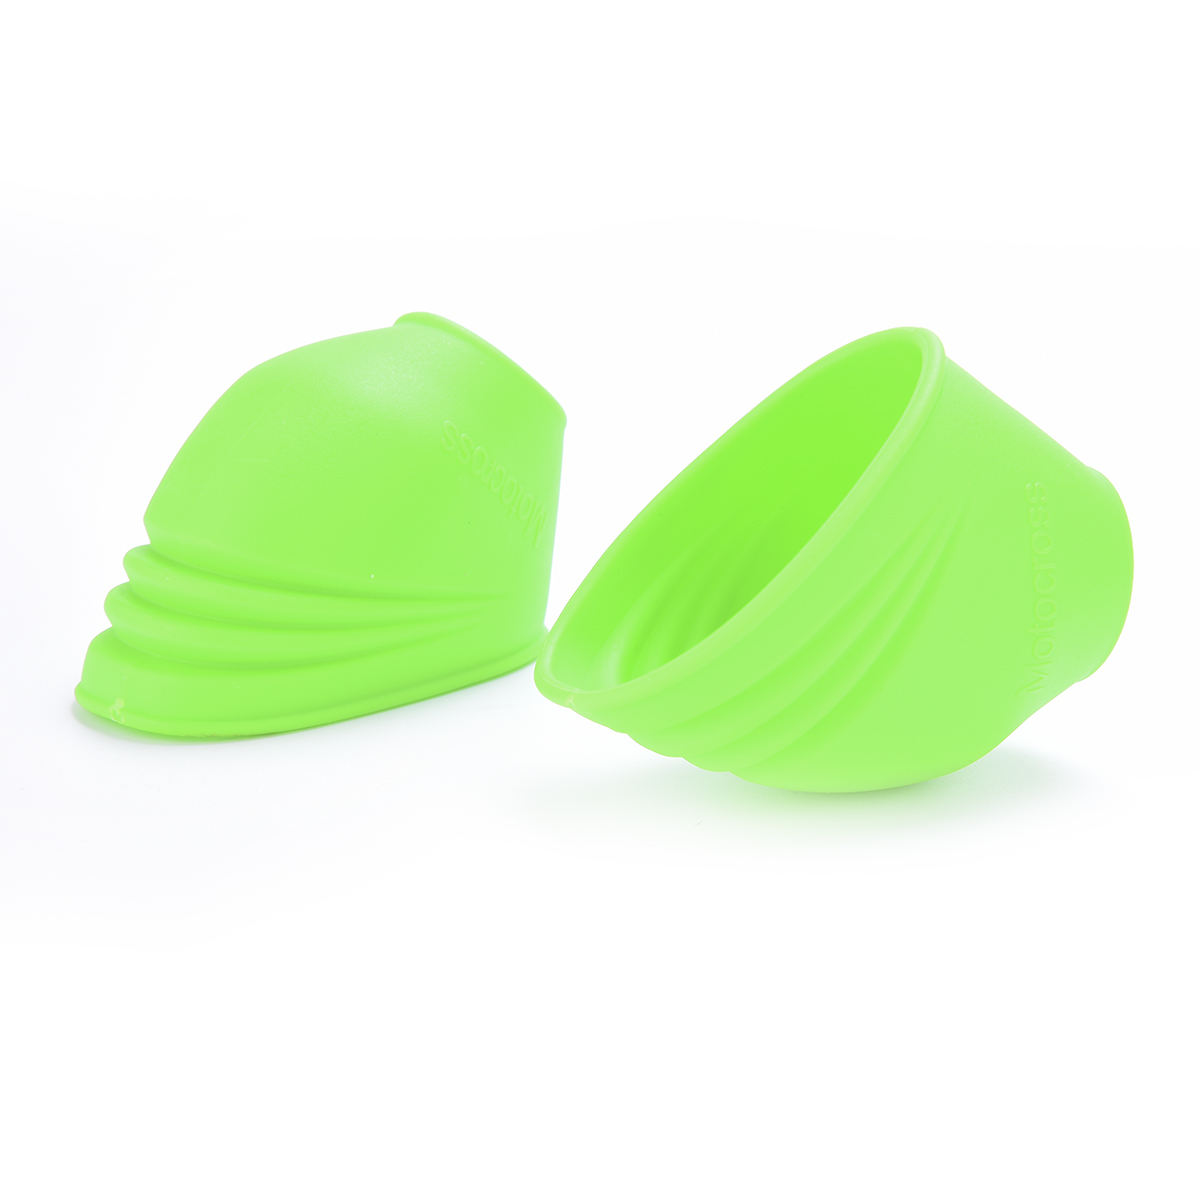 Footpeg Protection Cover Foot Peg Guard Protector for CRF450X CRF250X CRF250R GREEN